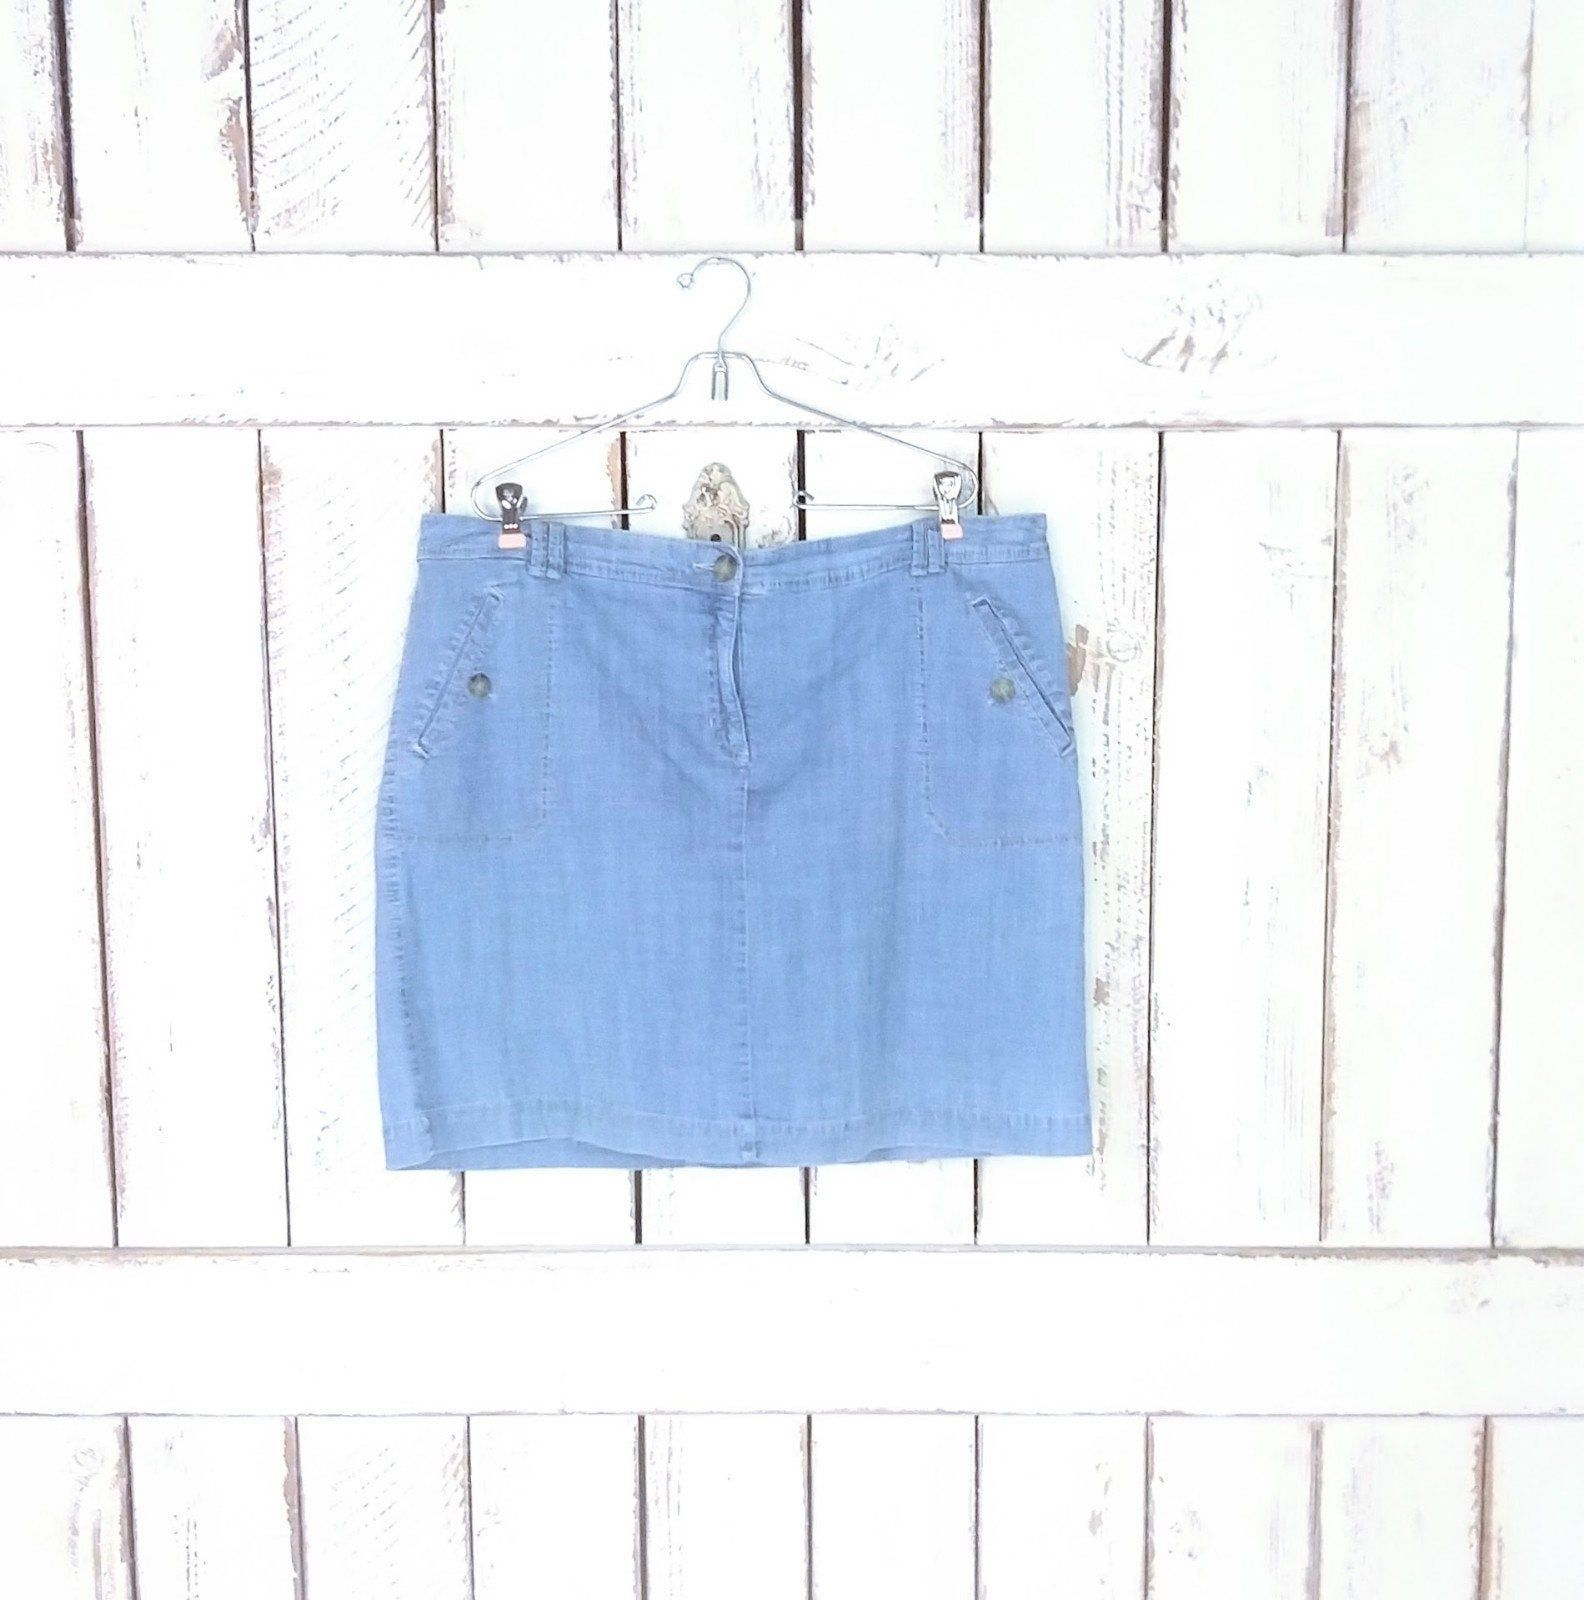 Vintage light blue jean denim skorts/Karen Scott denim mini skirt/denim shorts/plus size/18 #lightblueshorts Vintage light blue jean denim skorts/Karen Scott denim mini skirt/denim shorts/plus size/18 by GreenCanyonTradingCo on Etsy #lightblueshorts